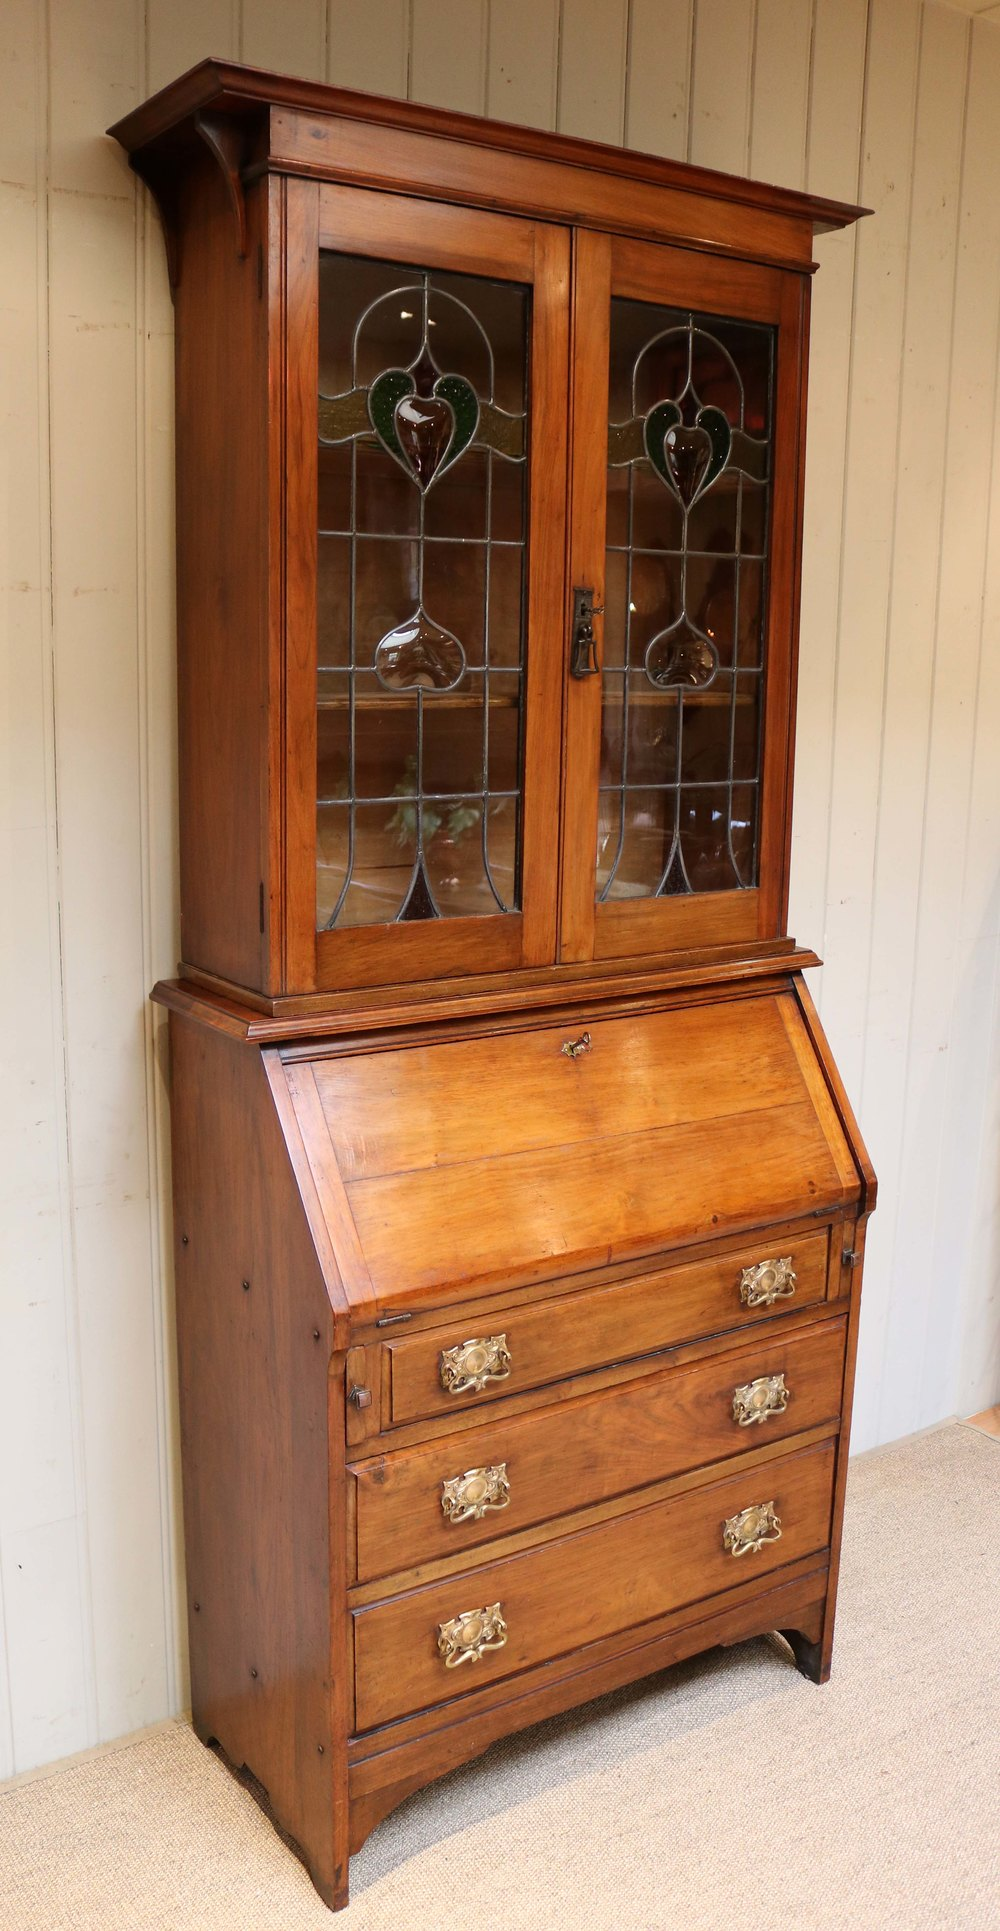 Arts and crafts walnut bureau bookcase antiques atlas for Arts and crafts bookshelf